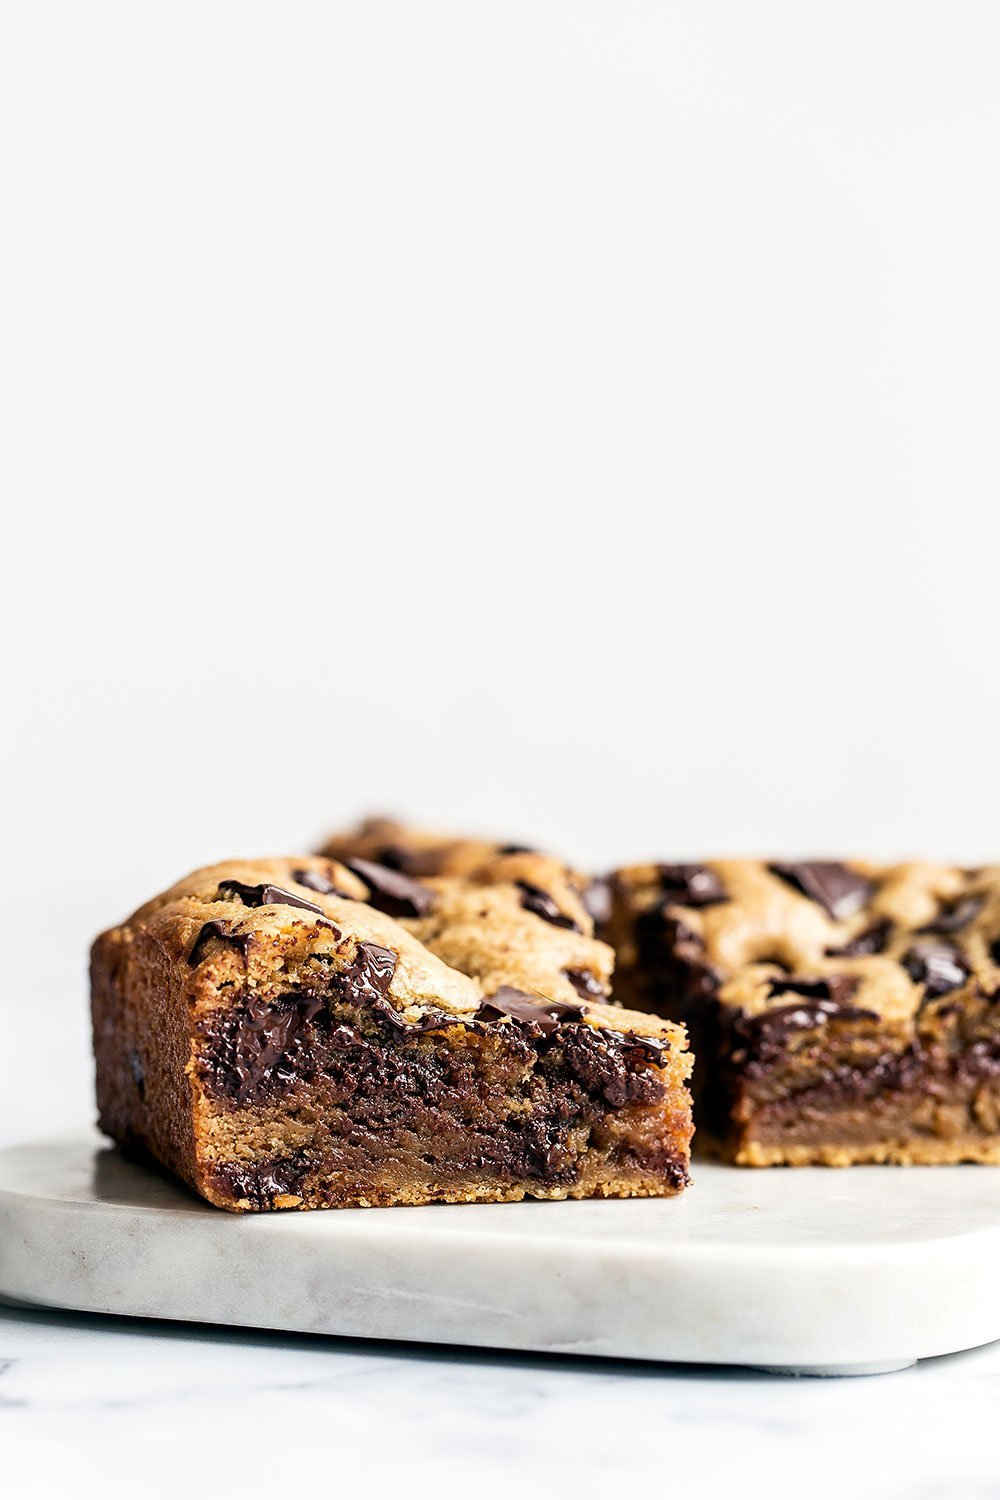 Peanut Butter Chocolate Chunk Bars are ultra thick, chewy, gooey, and loaded with tons of sweet peanut butter and chocolate flavor!